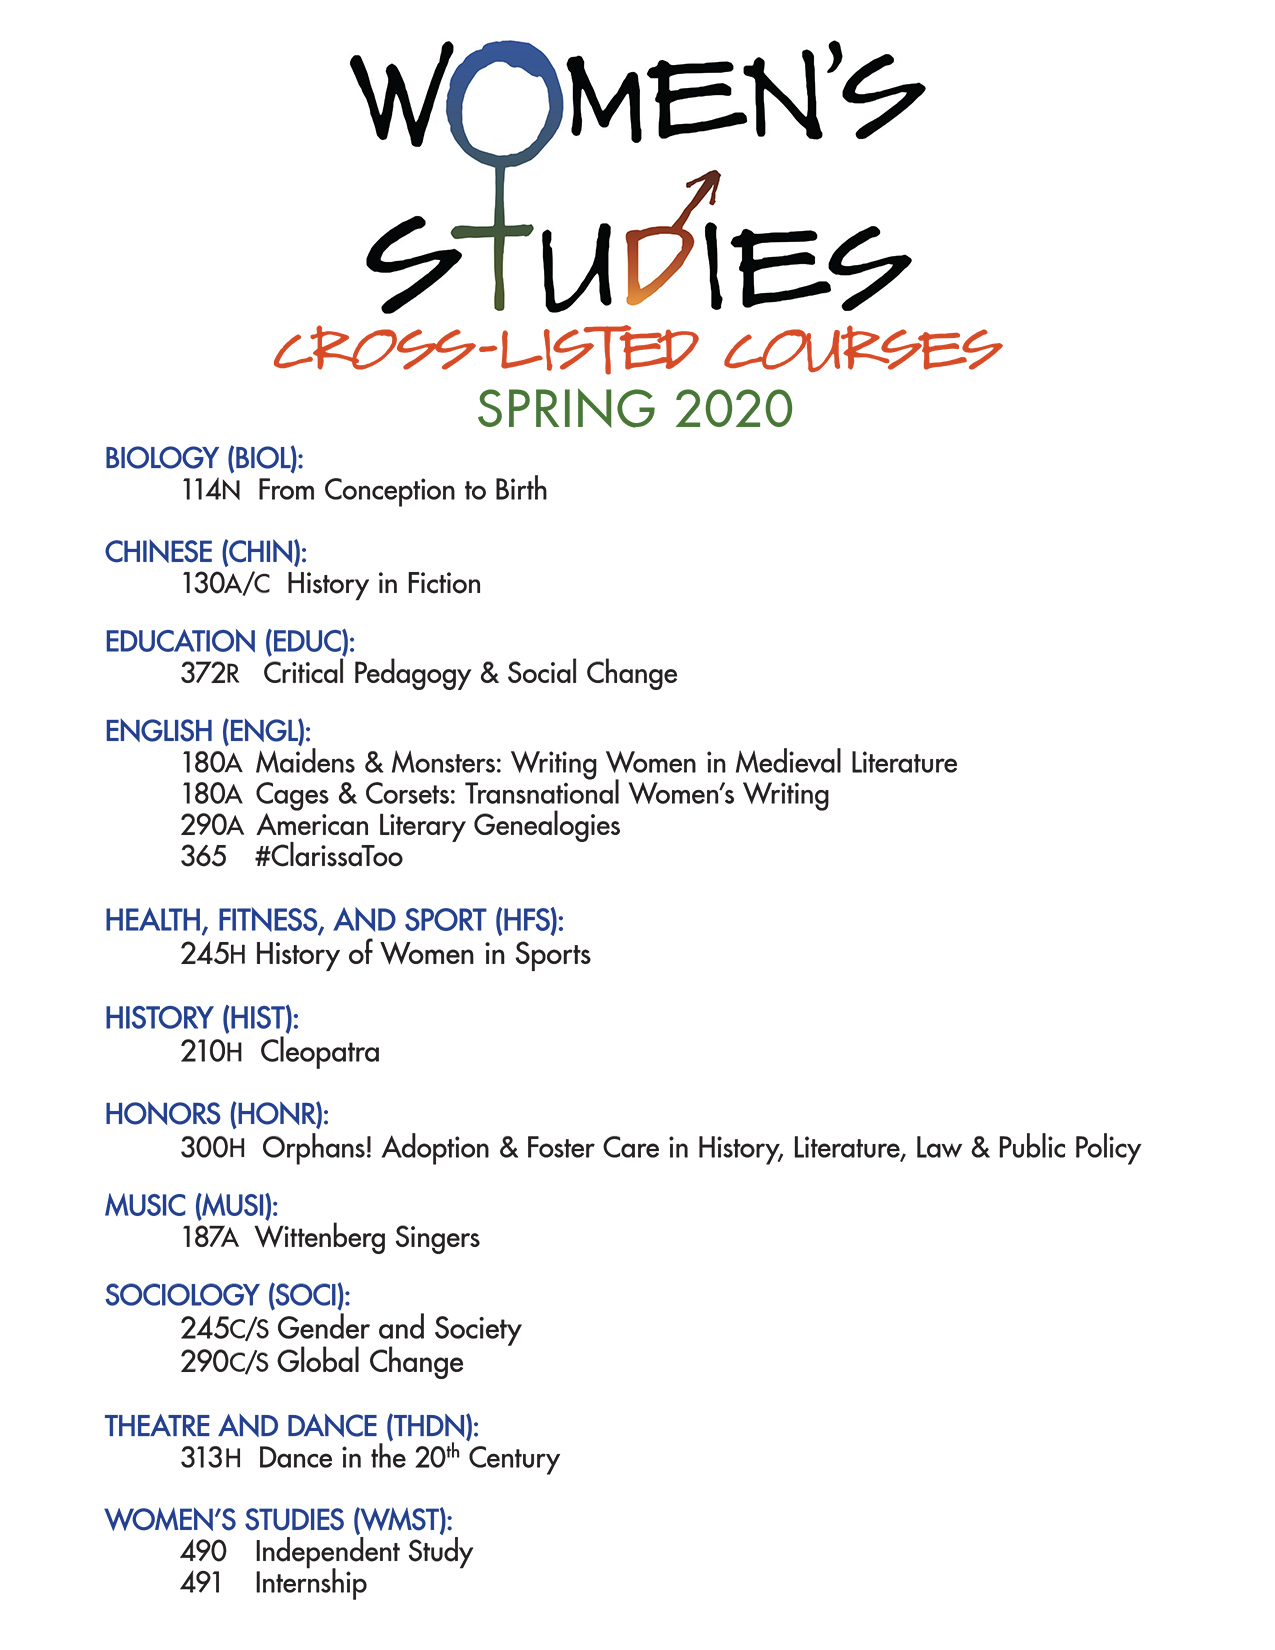 Women's Studies Course List Graphic